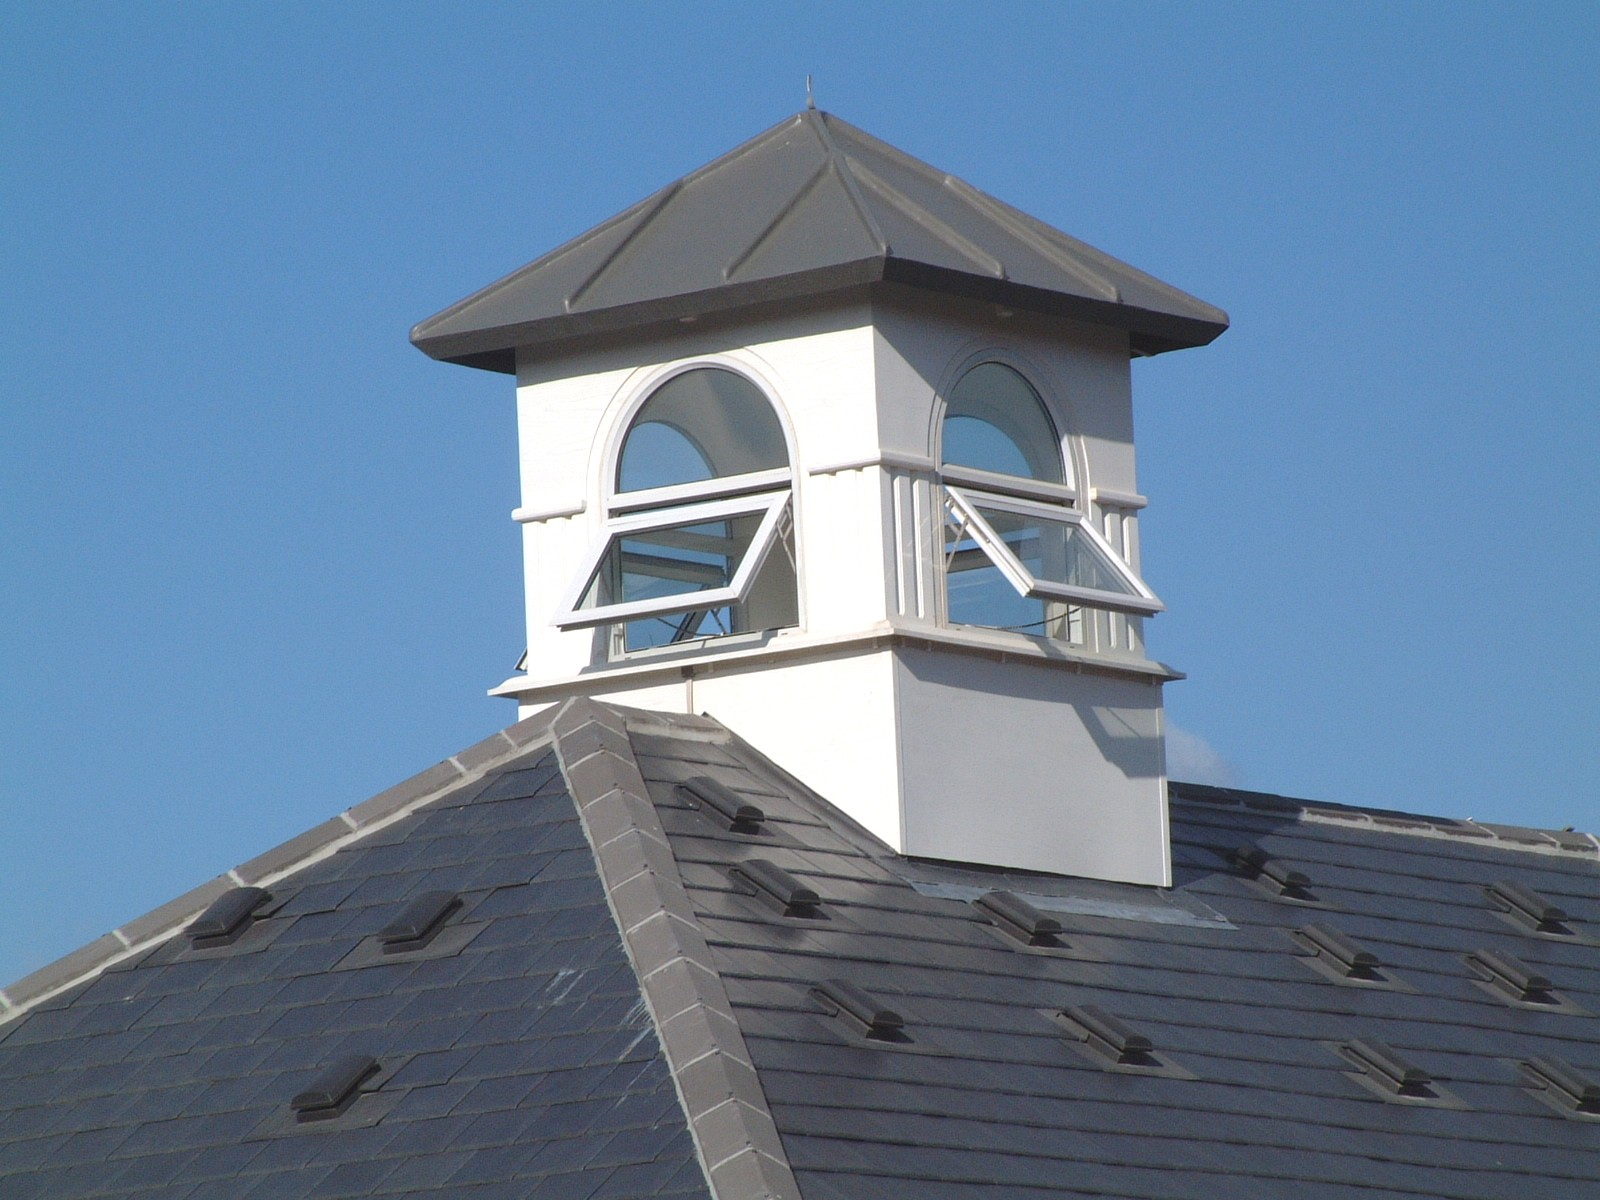 Cupola with windows